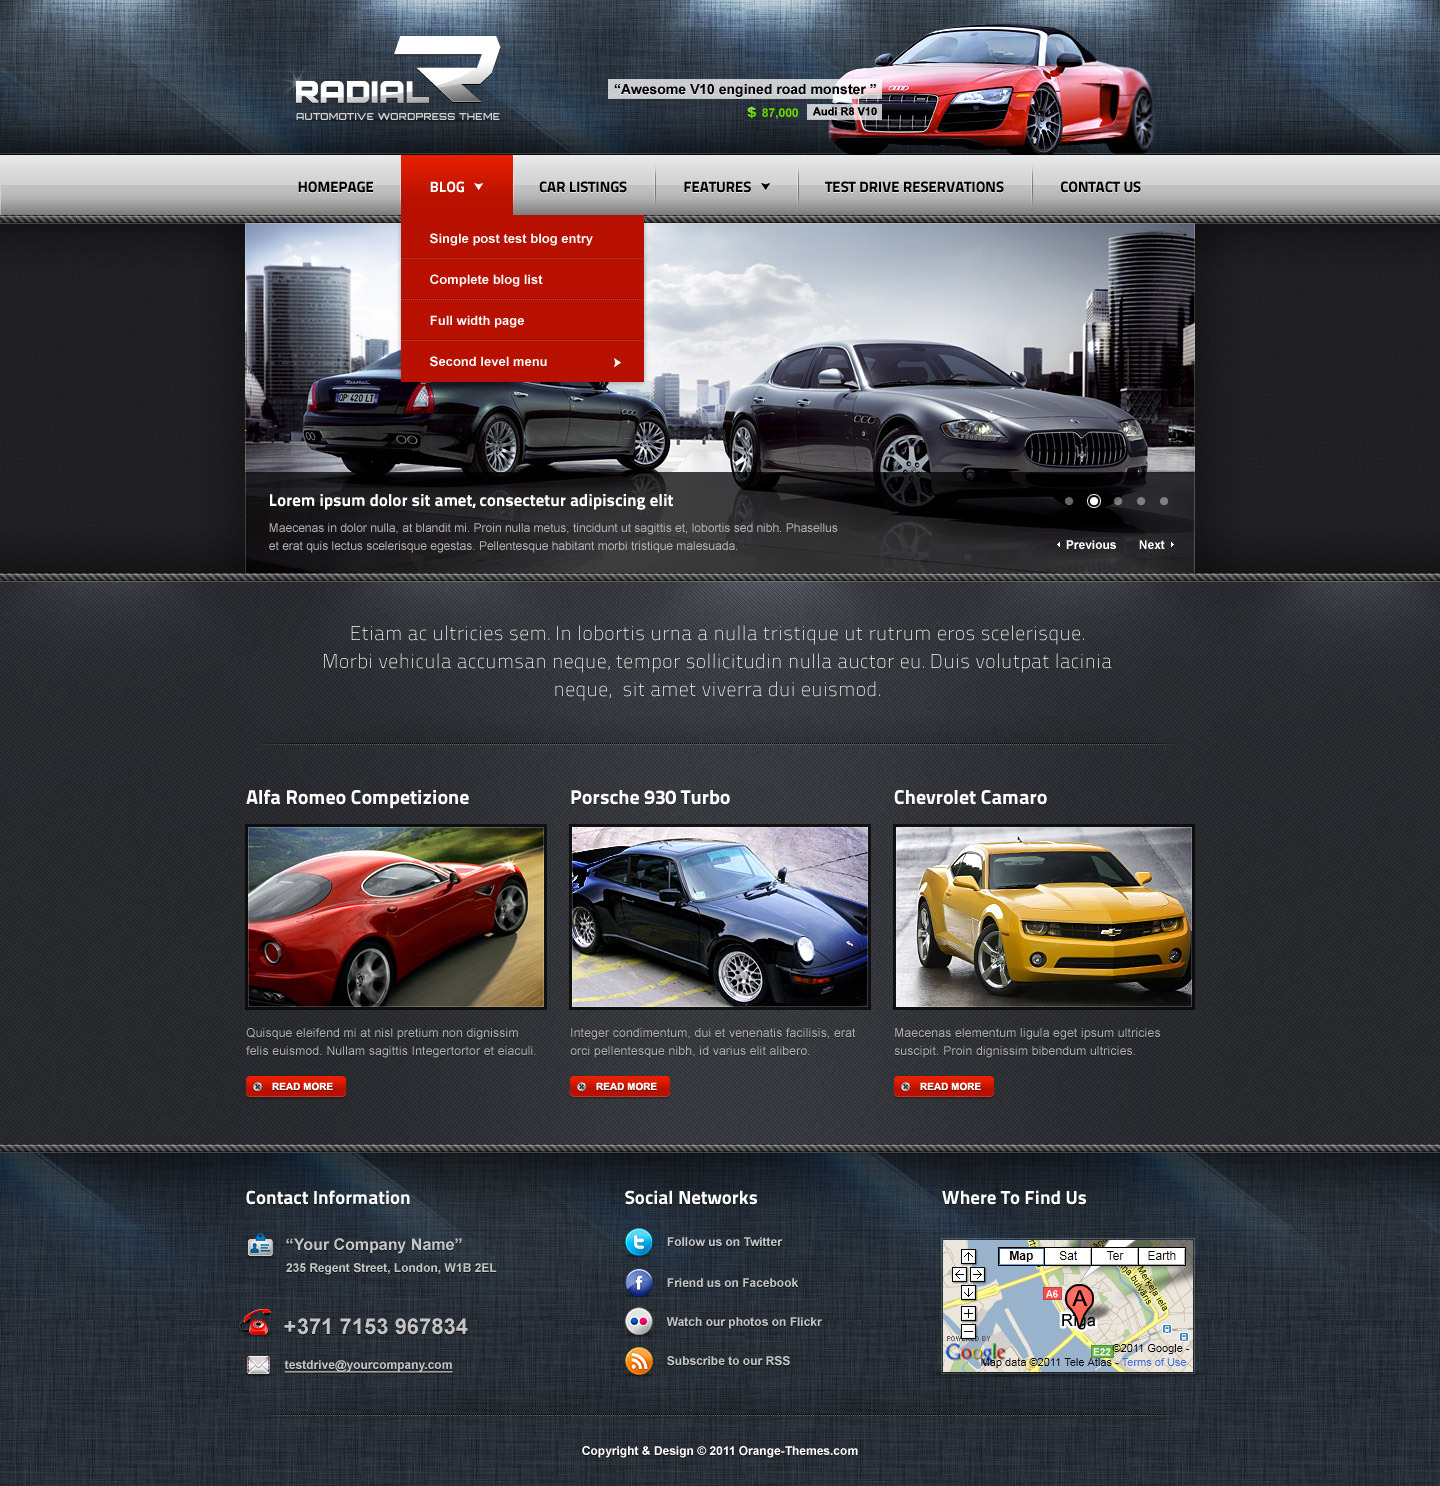 Radial - Premium Automotive & Tech WordPress Theme